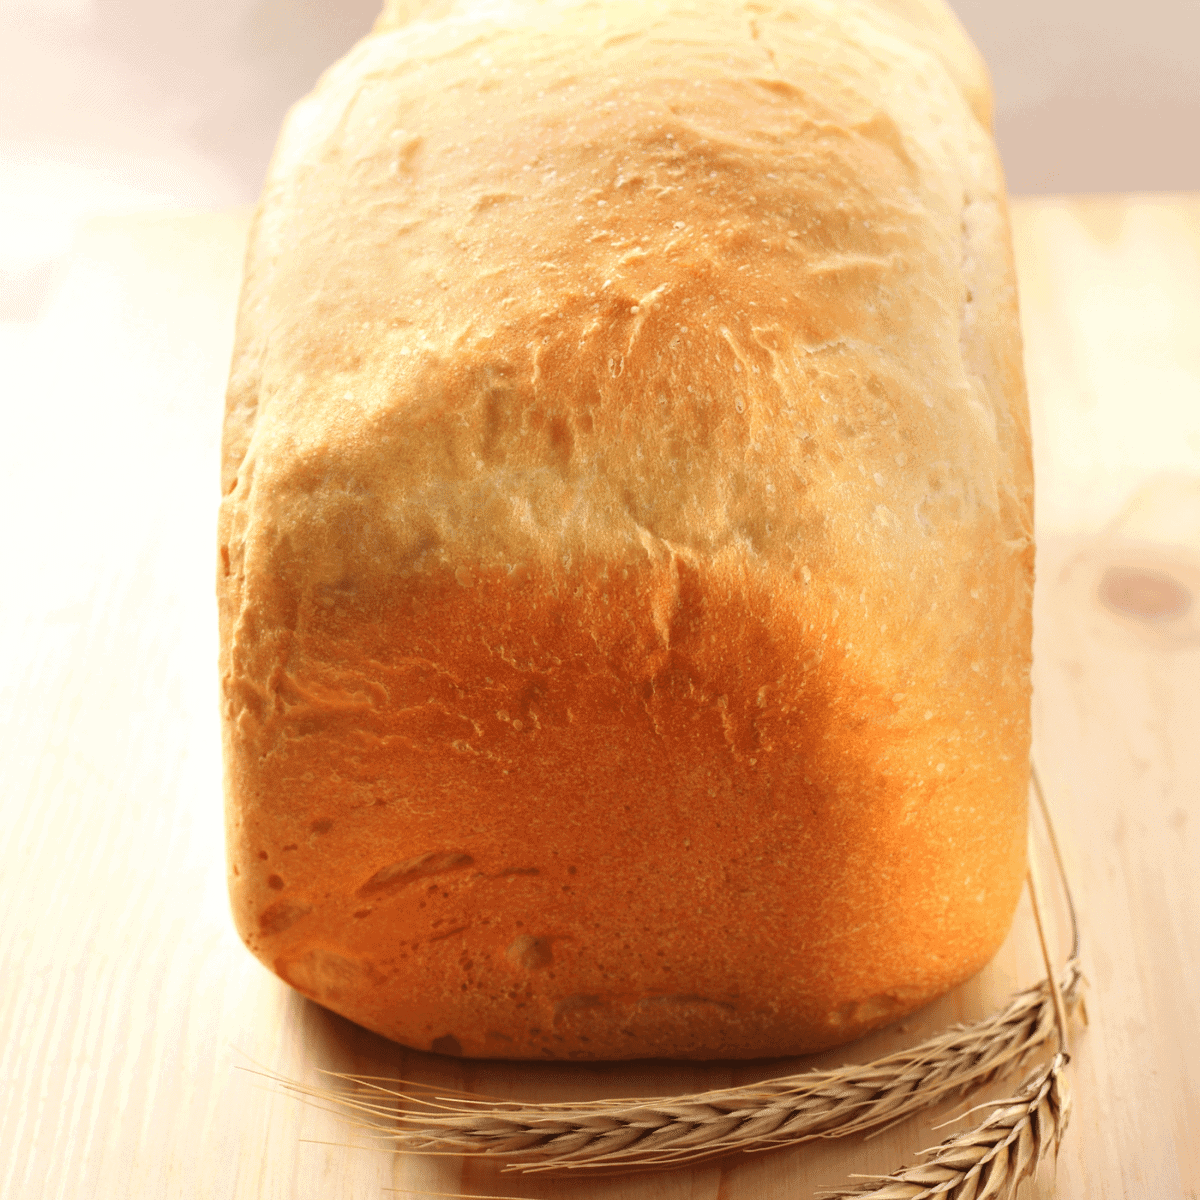 Fresh loaf of whole wheat bread with real wheat laying beside it